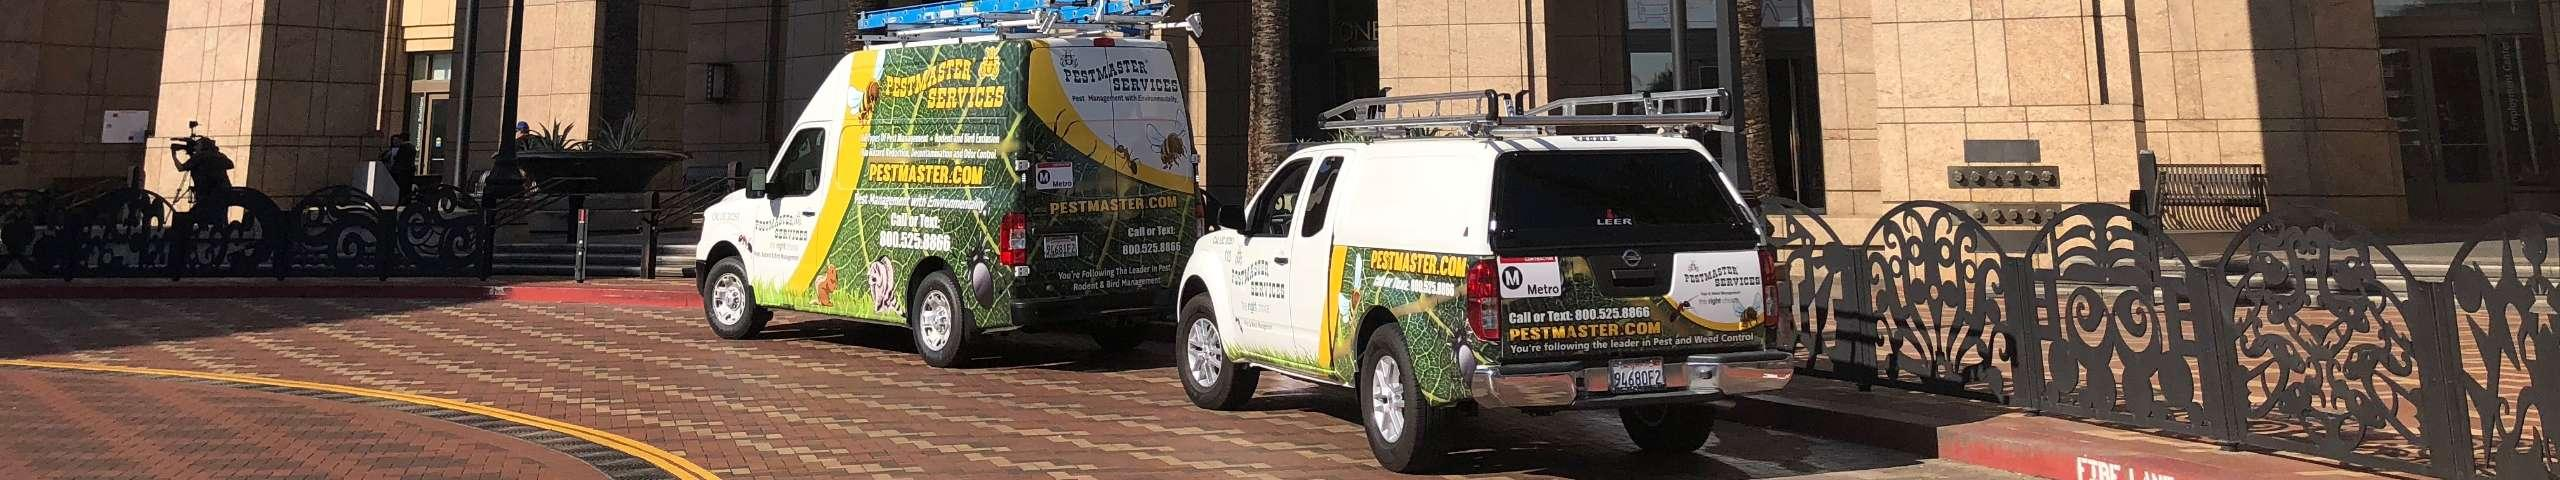 two pestmaster vehicles parked in front of a commercial building